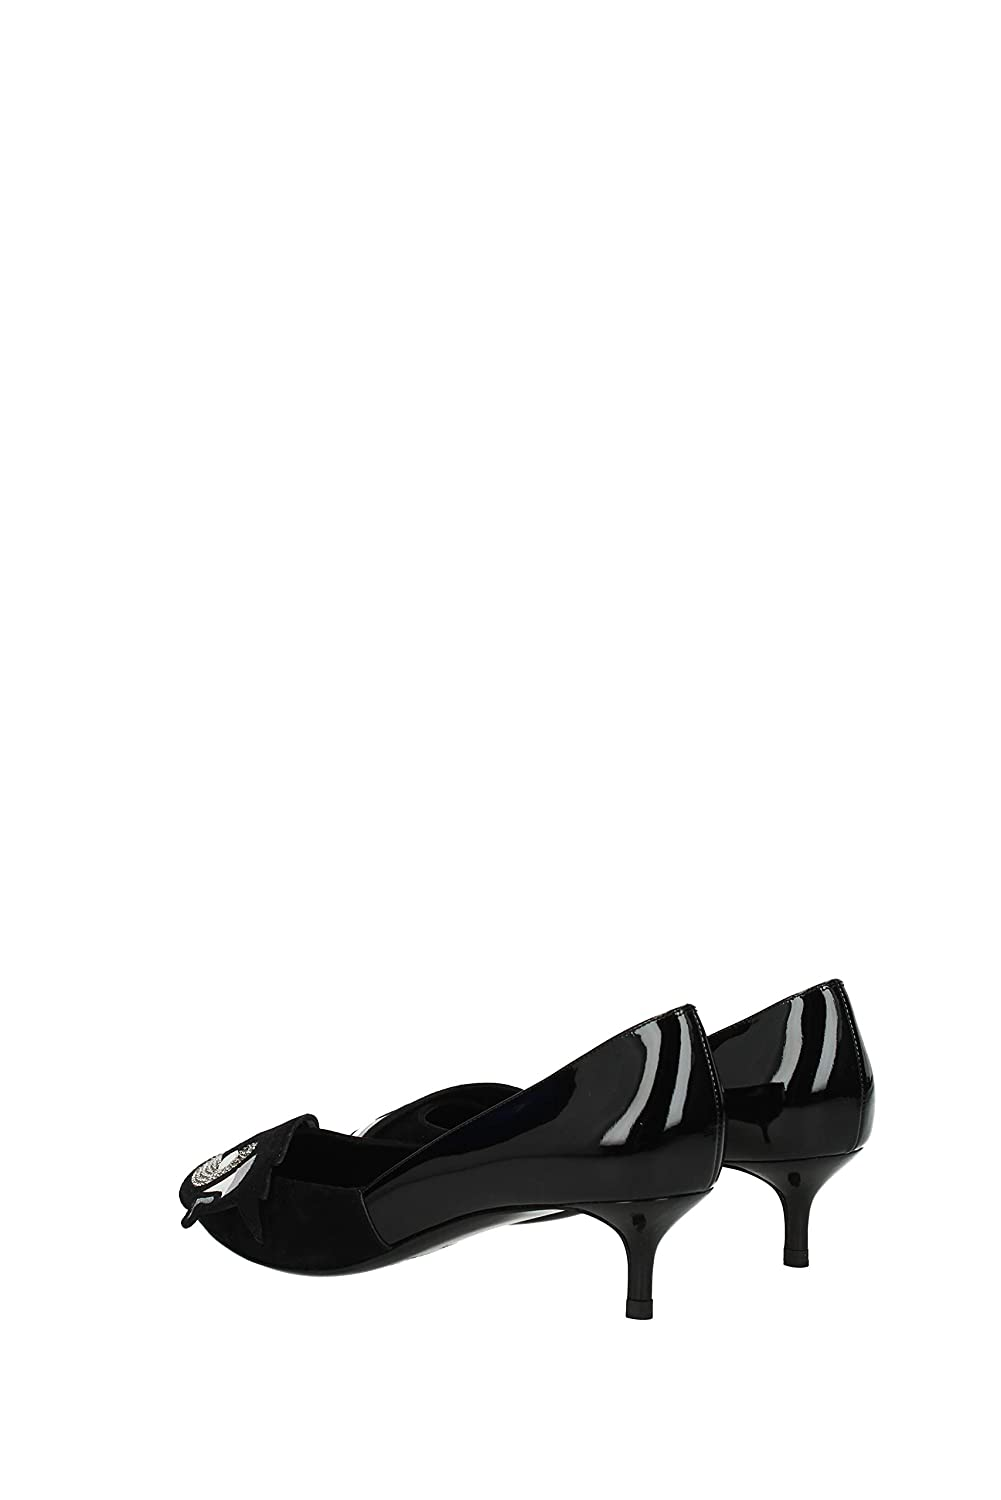 PIERRE HARDY Pumps EU Damen - Lackleder (GP01SUEDEKIDPATENTCALF) EU Pumps 9019b4